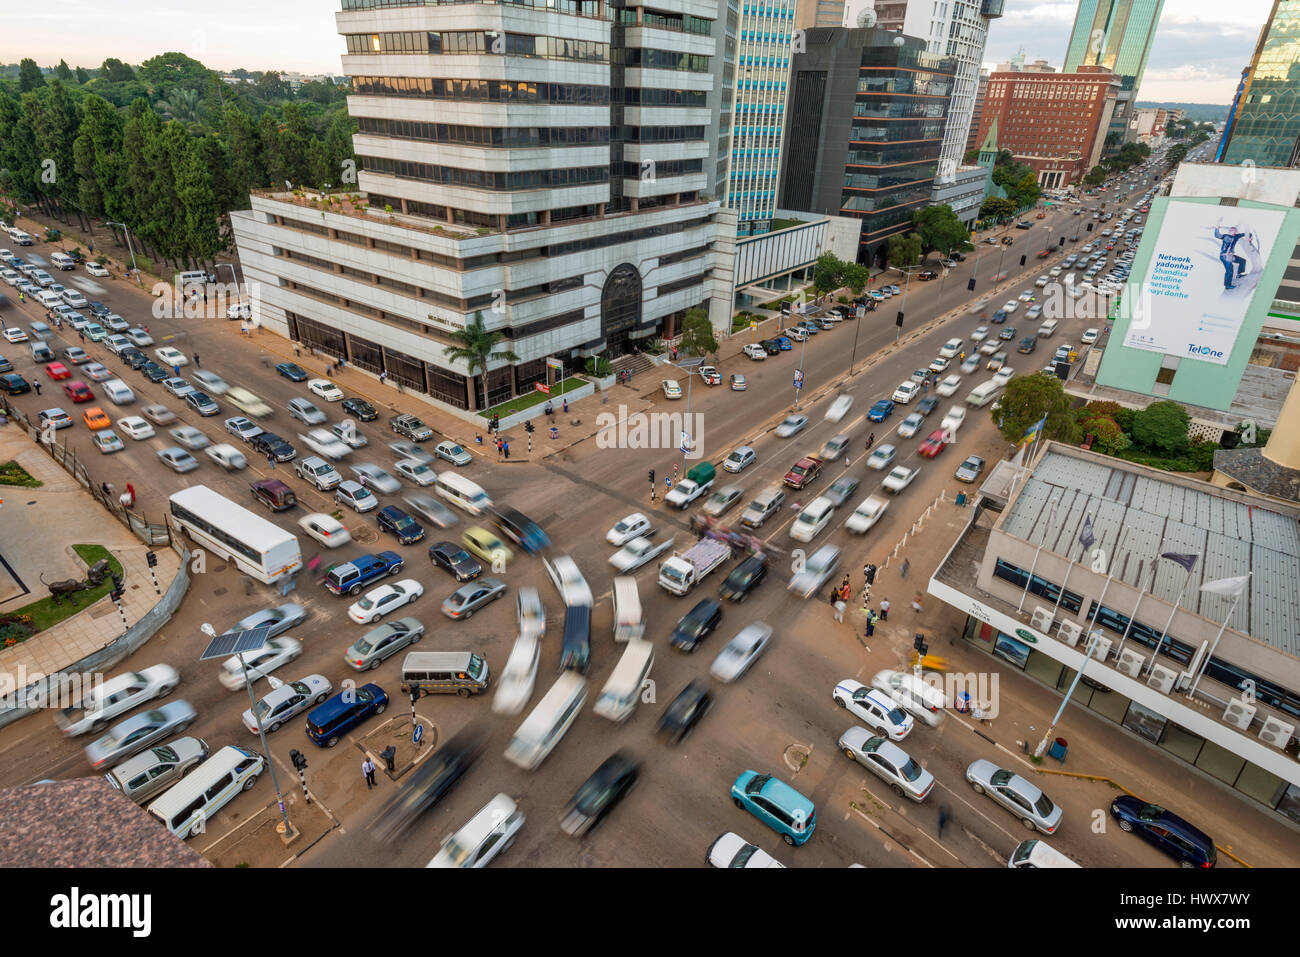 Harare is the capital city of Zimbabwe - Stock Image